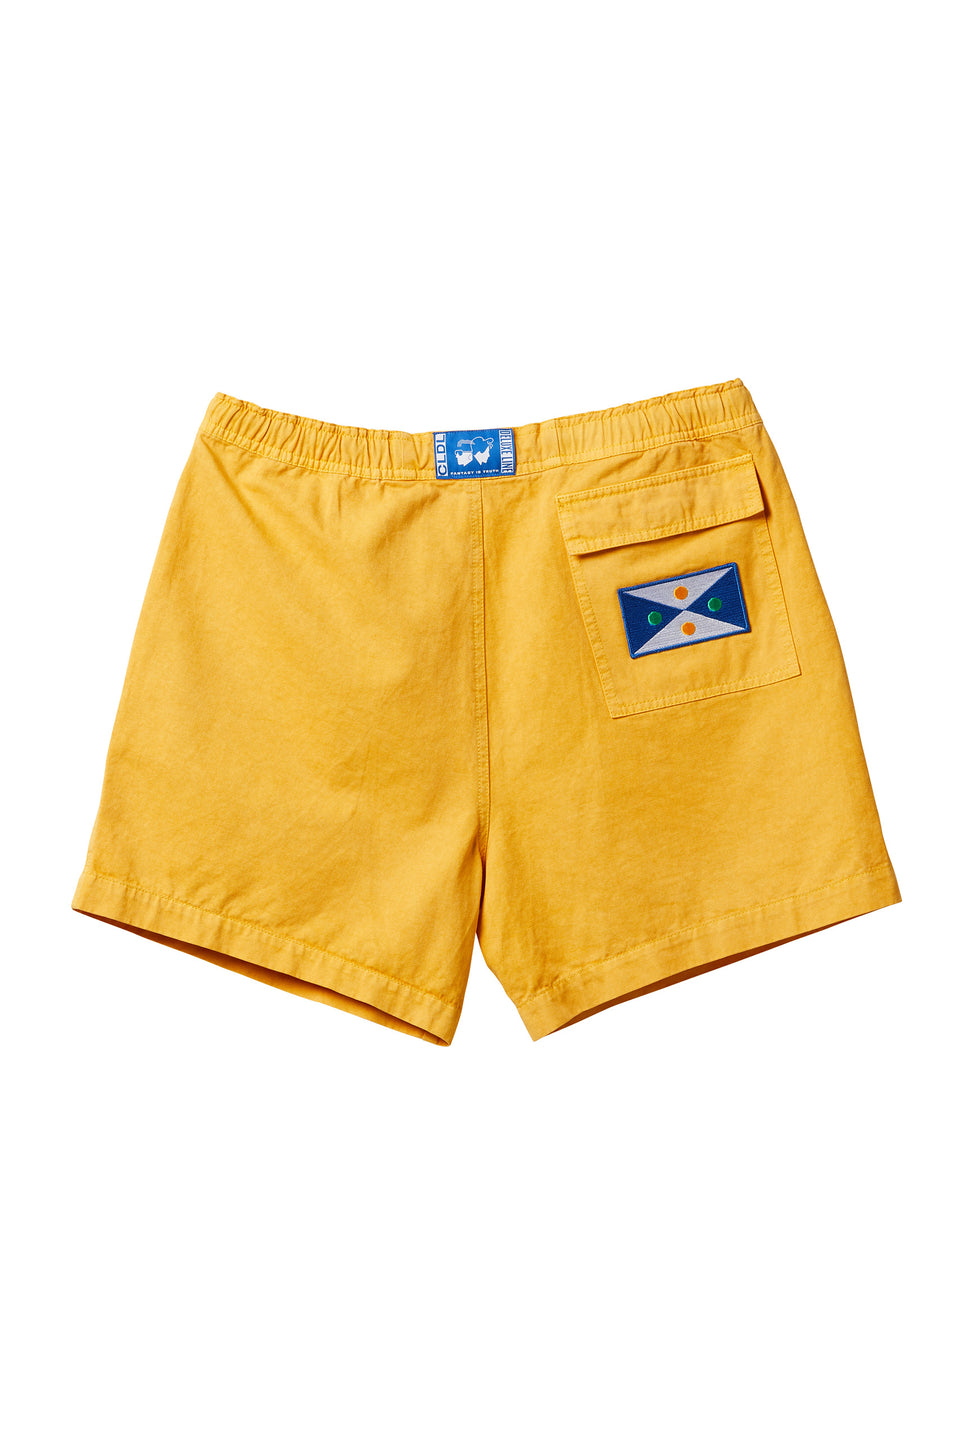 Fantasy Leisure Short (Golden Spur)